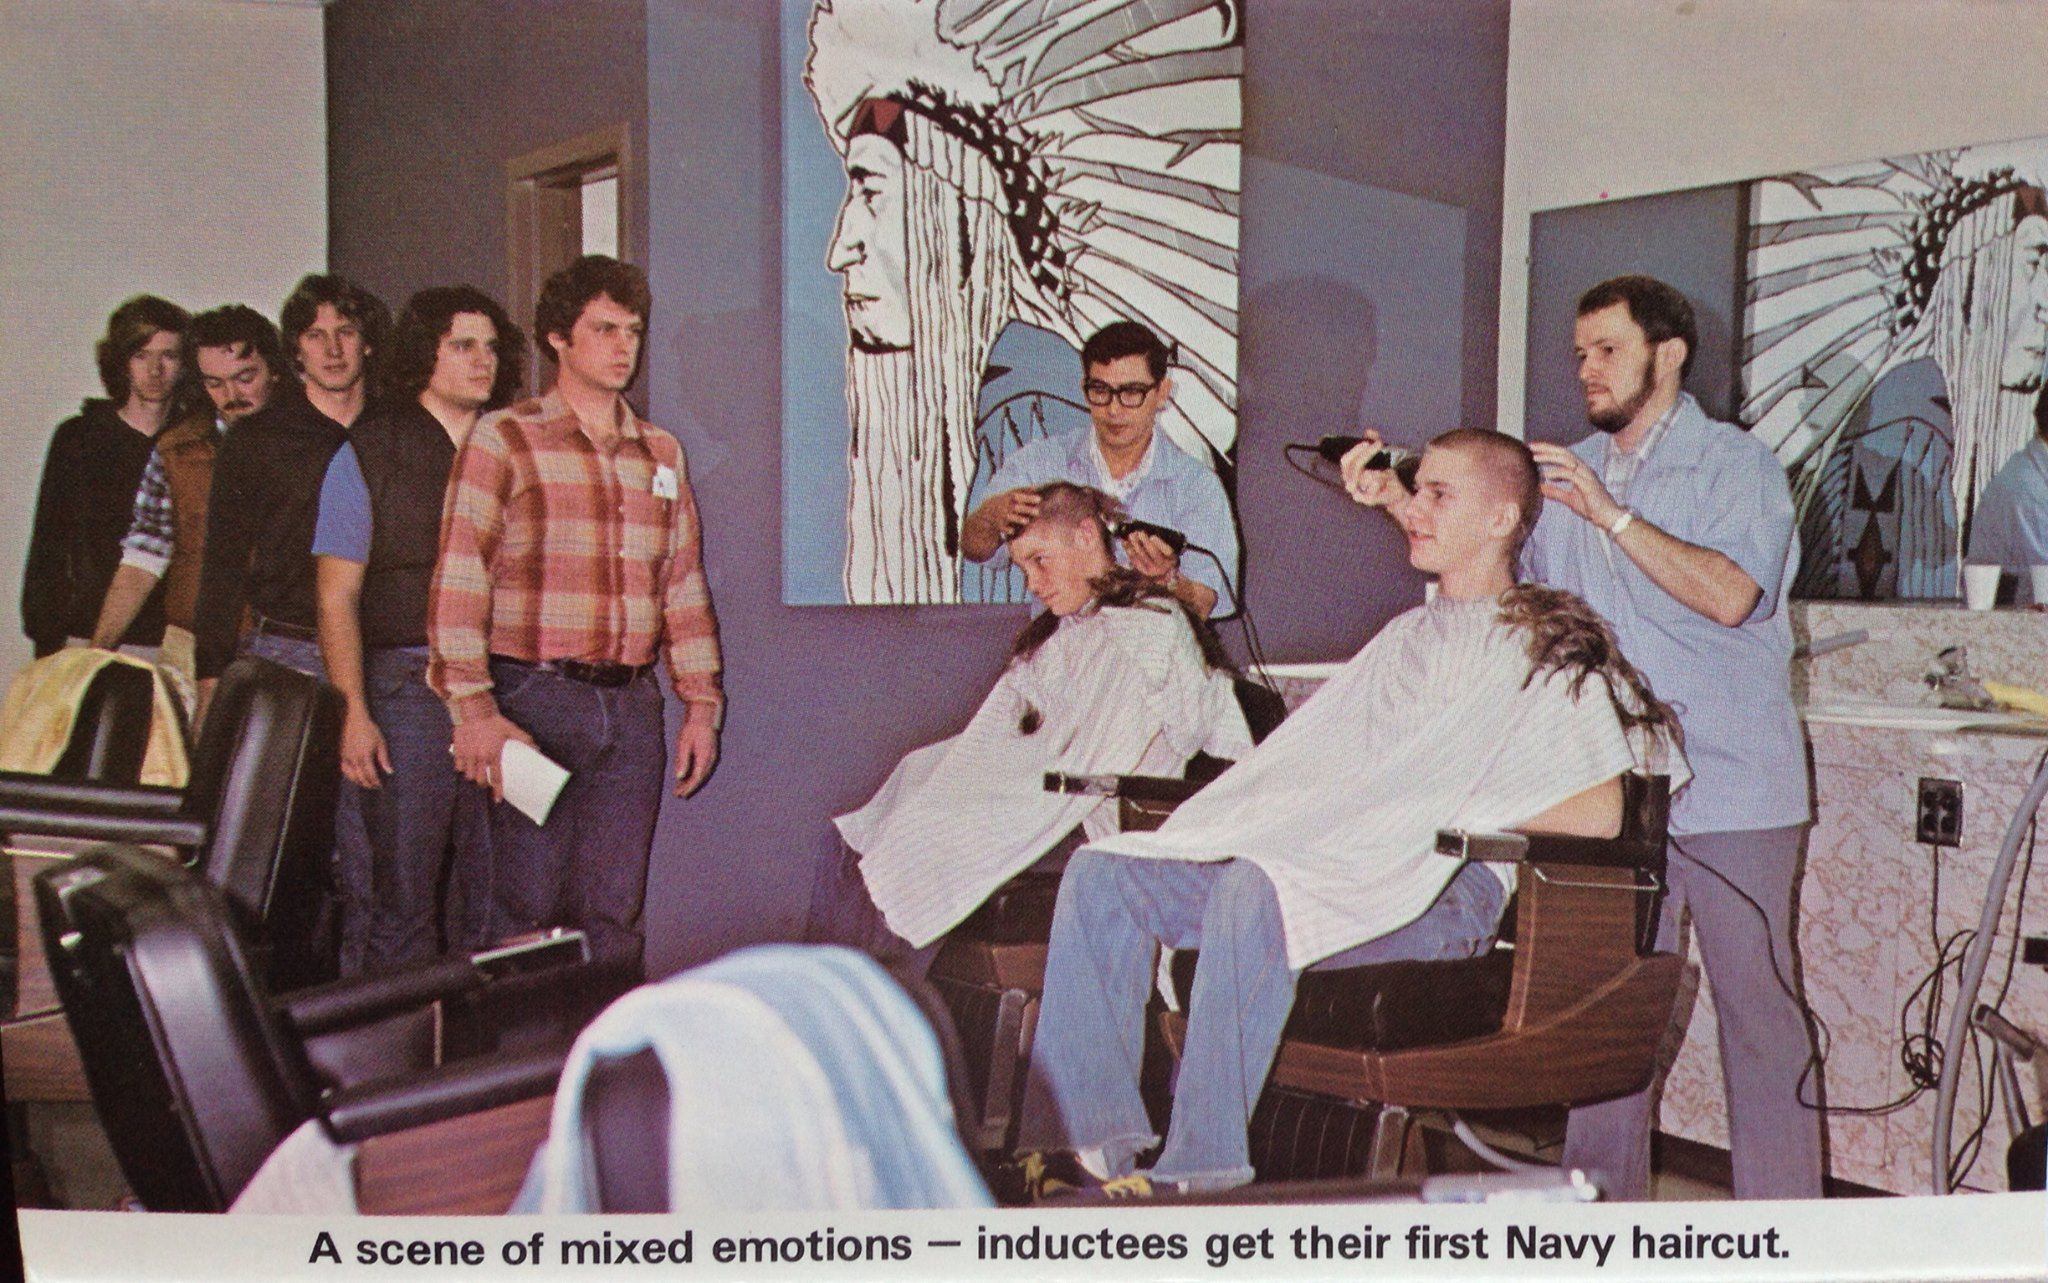 Rtc San Diego The First Haircut And It Wasn T A Free One Either Recruits Paid For The Haircut Out Of A Chit Book That T Navy Day Navy Training Us Navy Ships